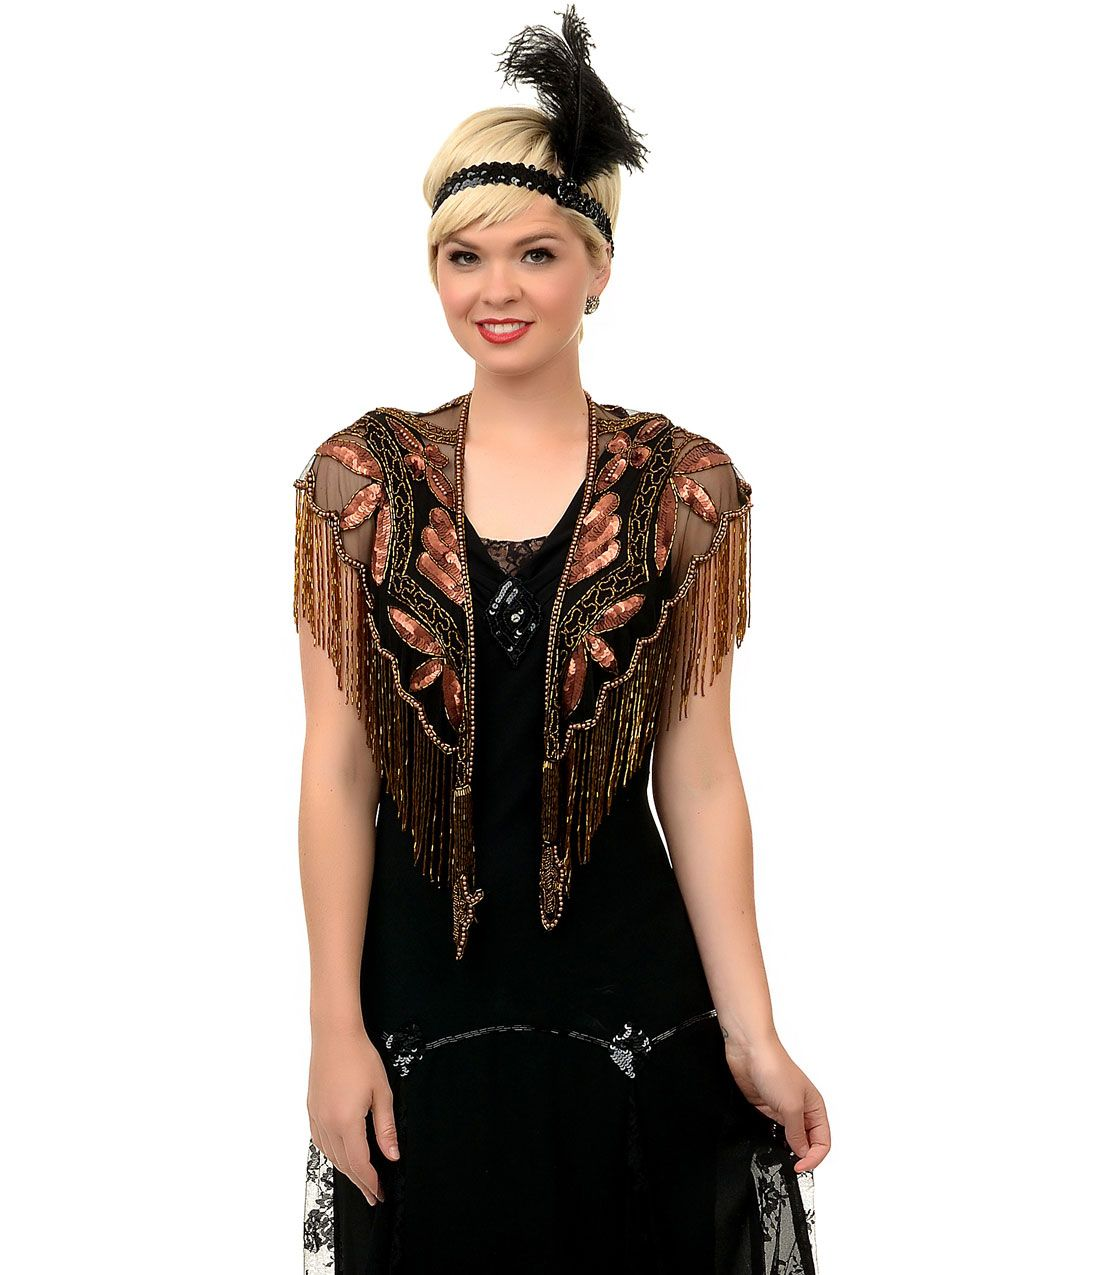 This is a deco-inspired black net and copper beaded capelet that can spruce up just about any outfit for a night out on the town. All hand sewn, the pattern is intricate with gorgeous beaded fringe.